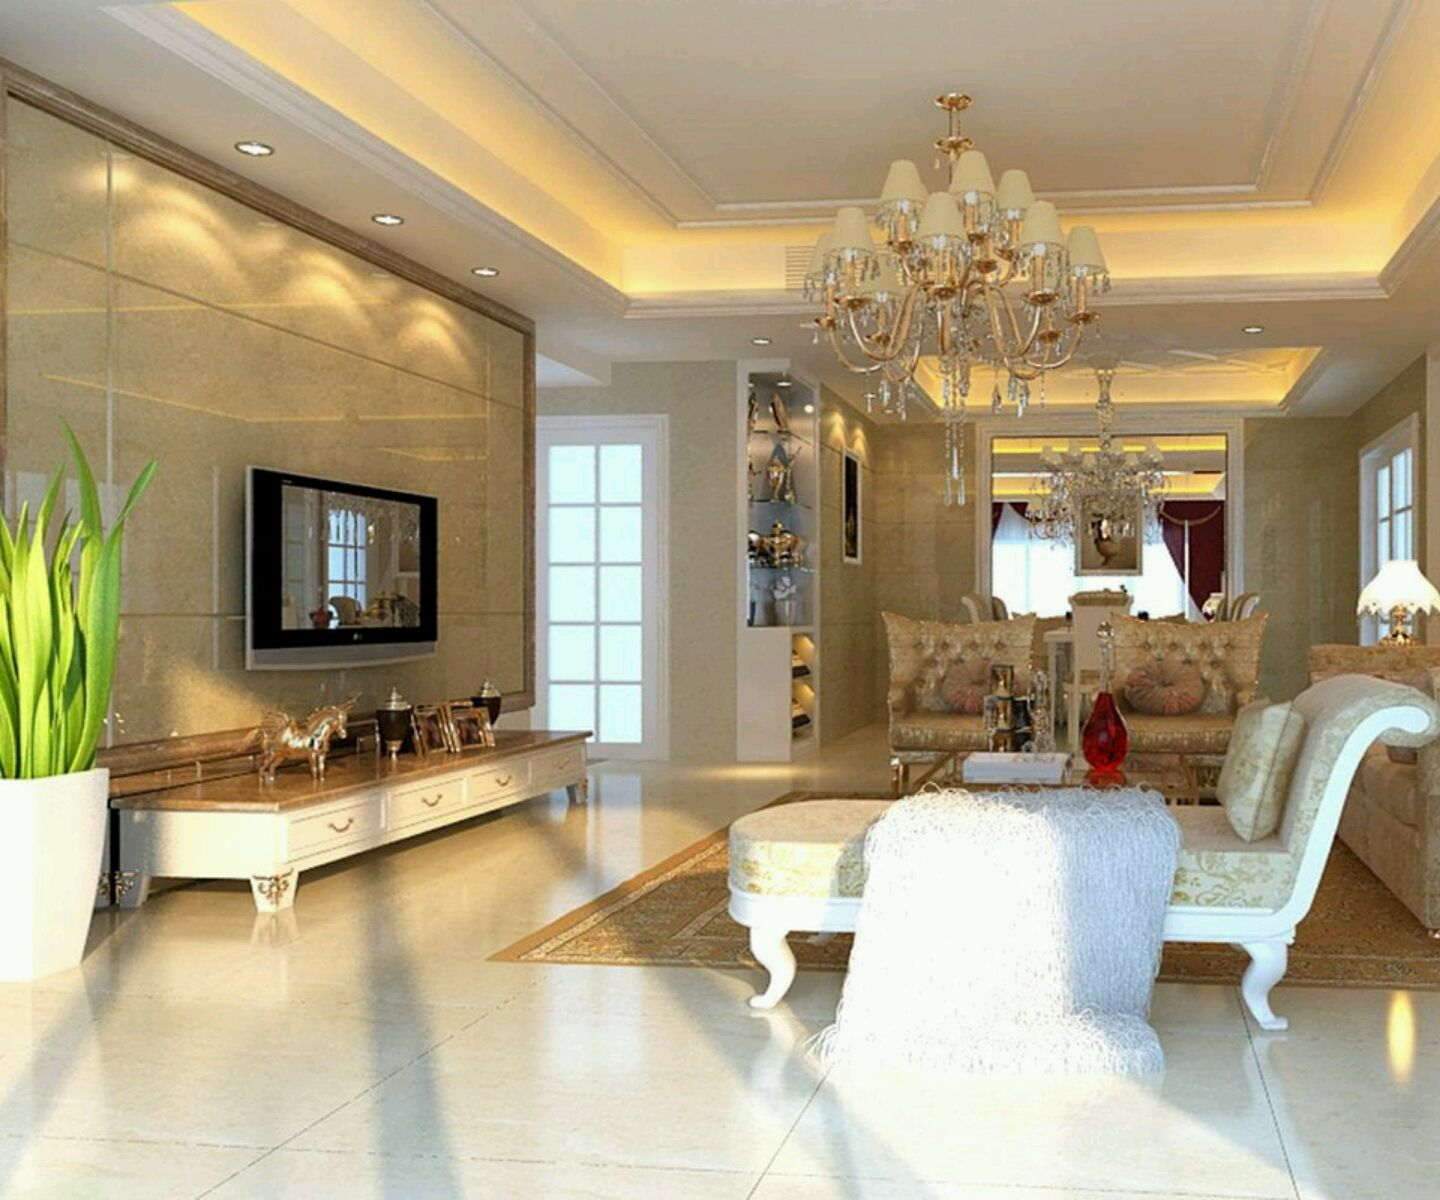 Modern Beautiful Bedrooms Interior Decoration Designs: Luxury Homes Interior Decoration Living Room Designs Ideas